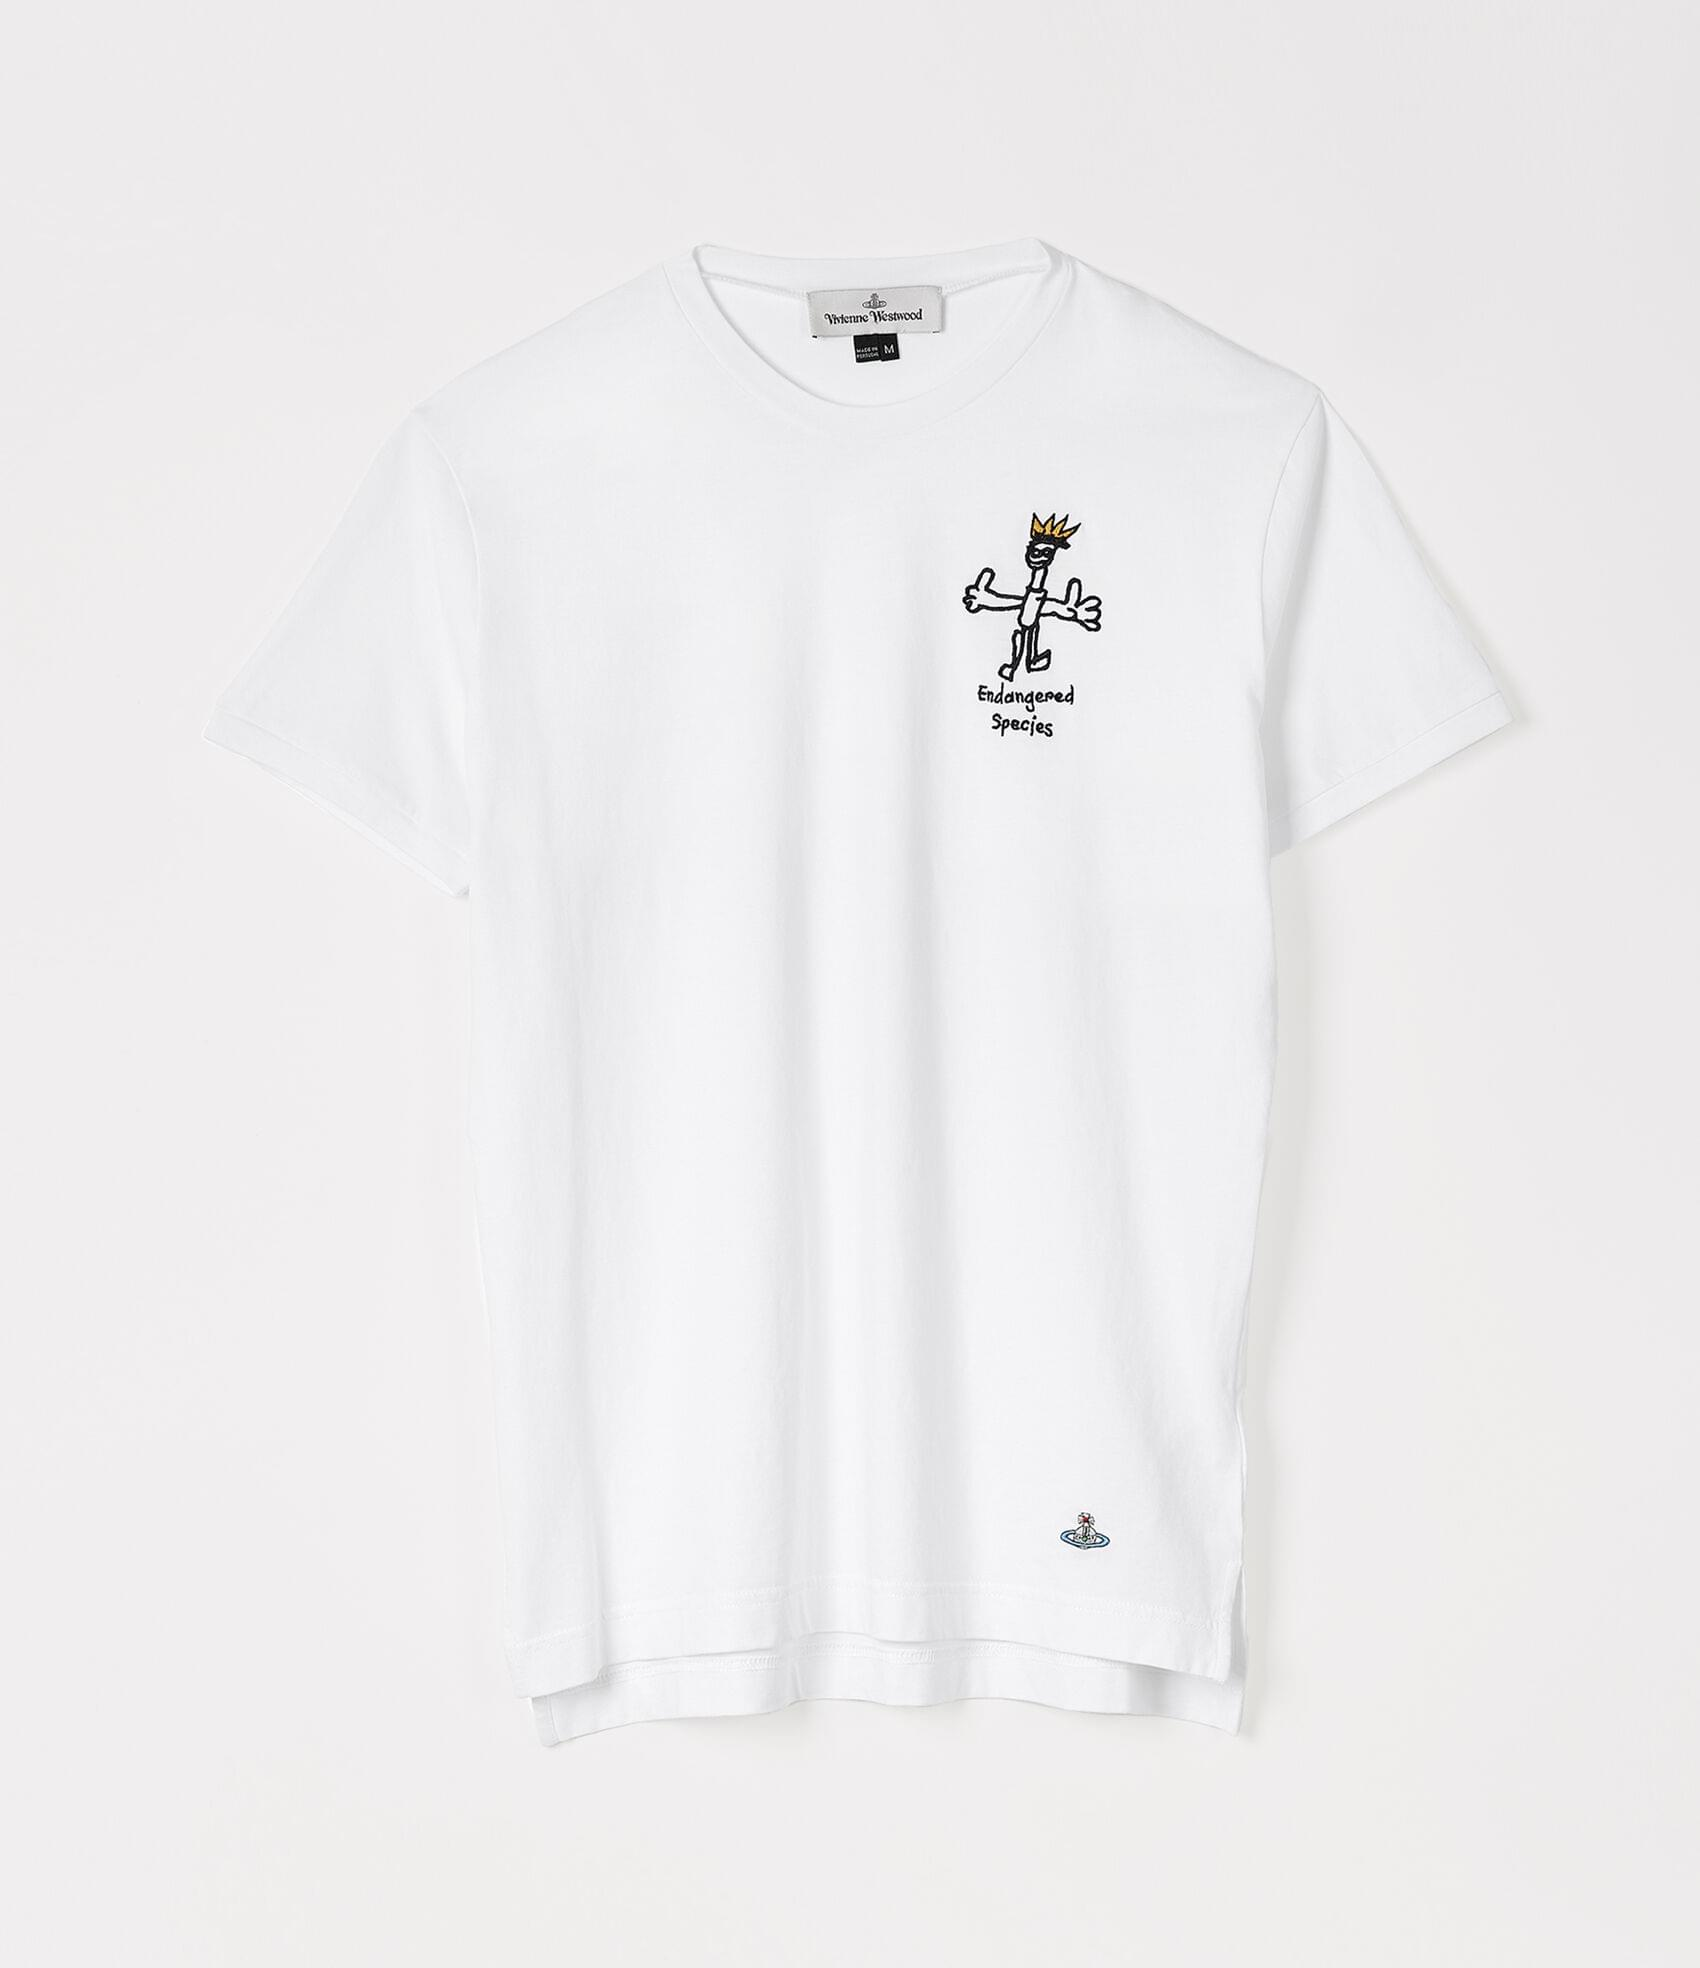 Vivienne Westwood PERU T-SHIRT ENDANGERED SPECIES WHITE